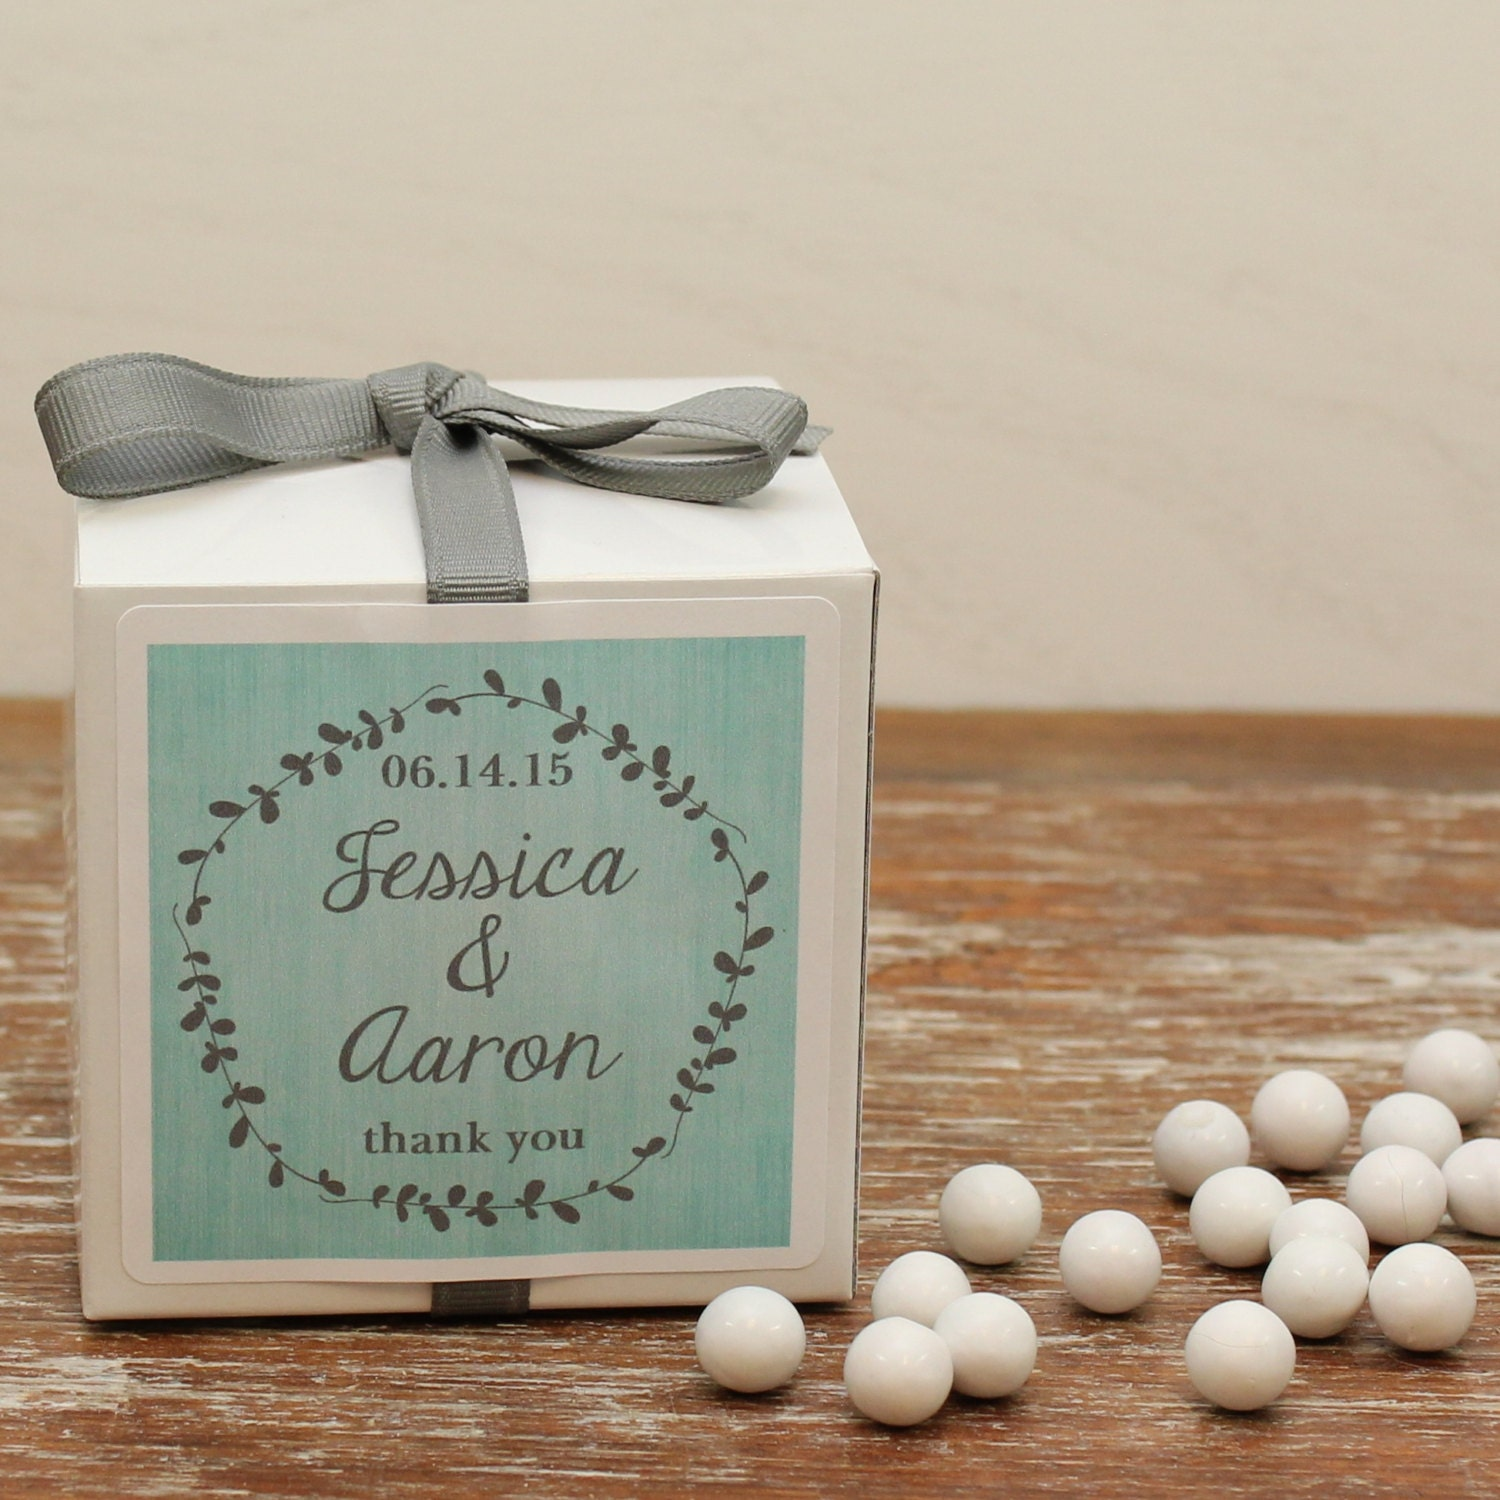 12 Personalized Wedding Favor Boxes Laurel Label By Thefavorbox